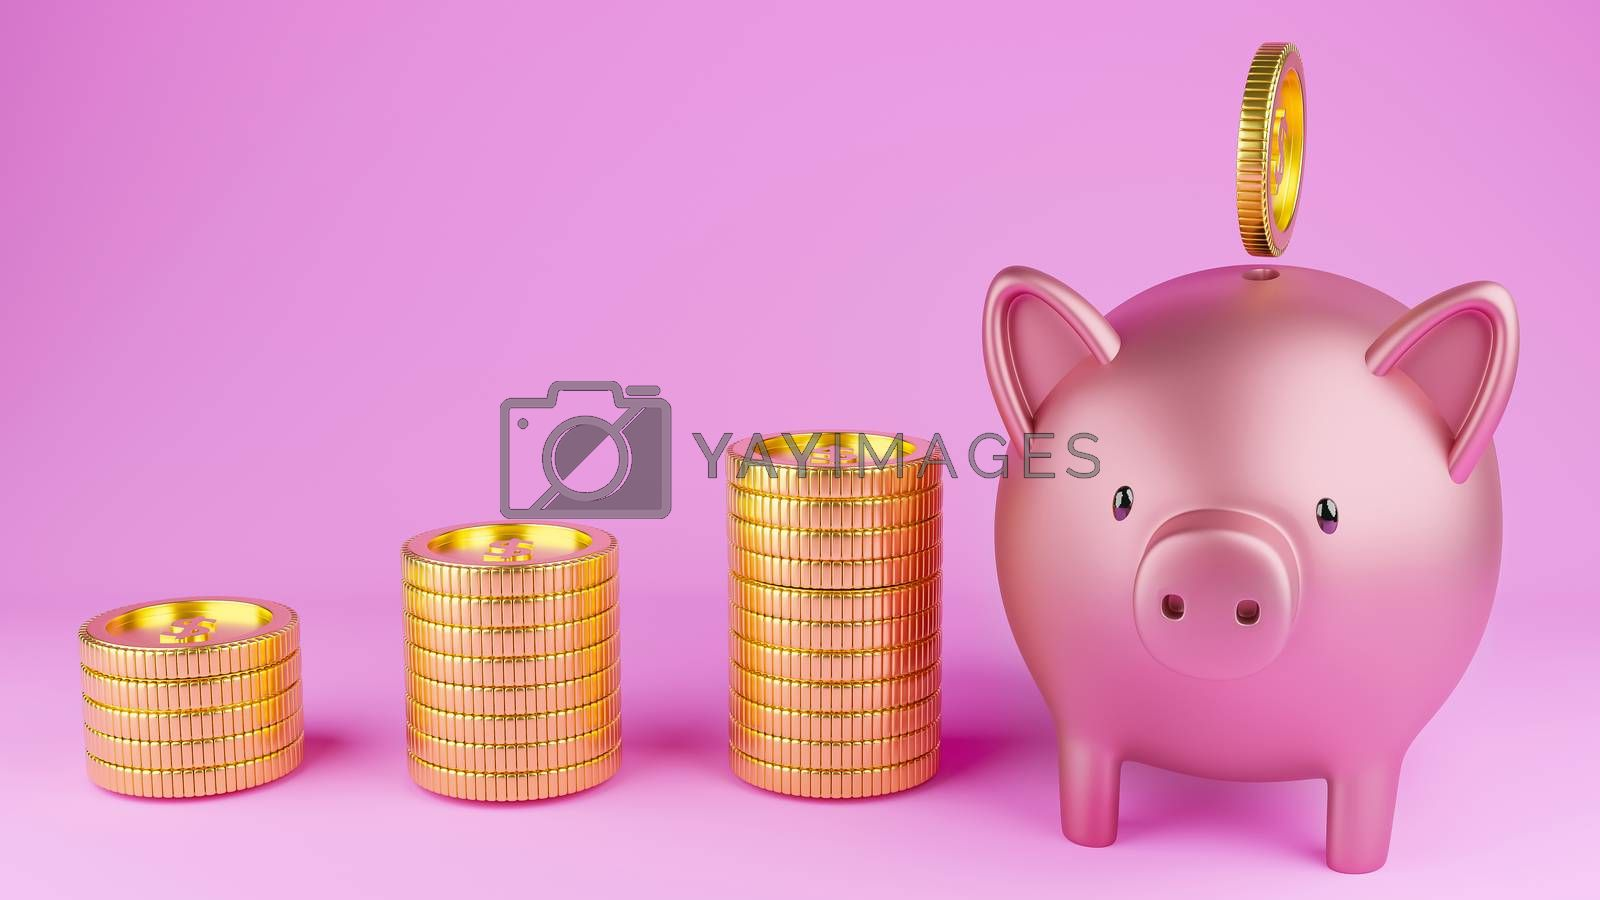 3D rendered image of a metallic pink piggy bank and gold coins on pink background.